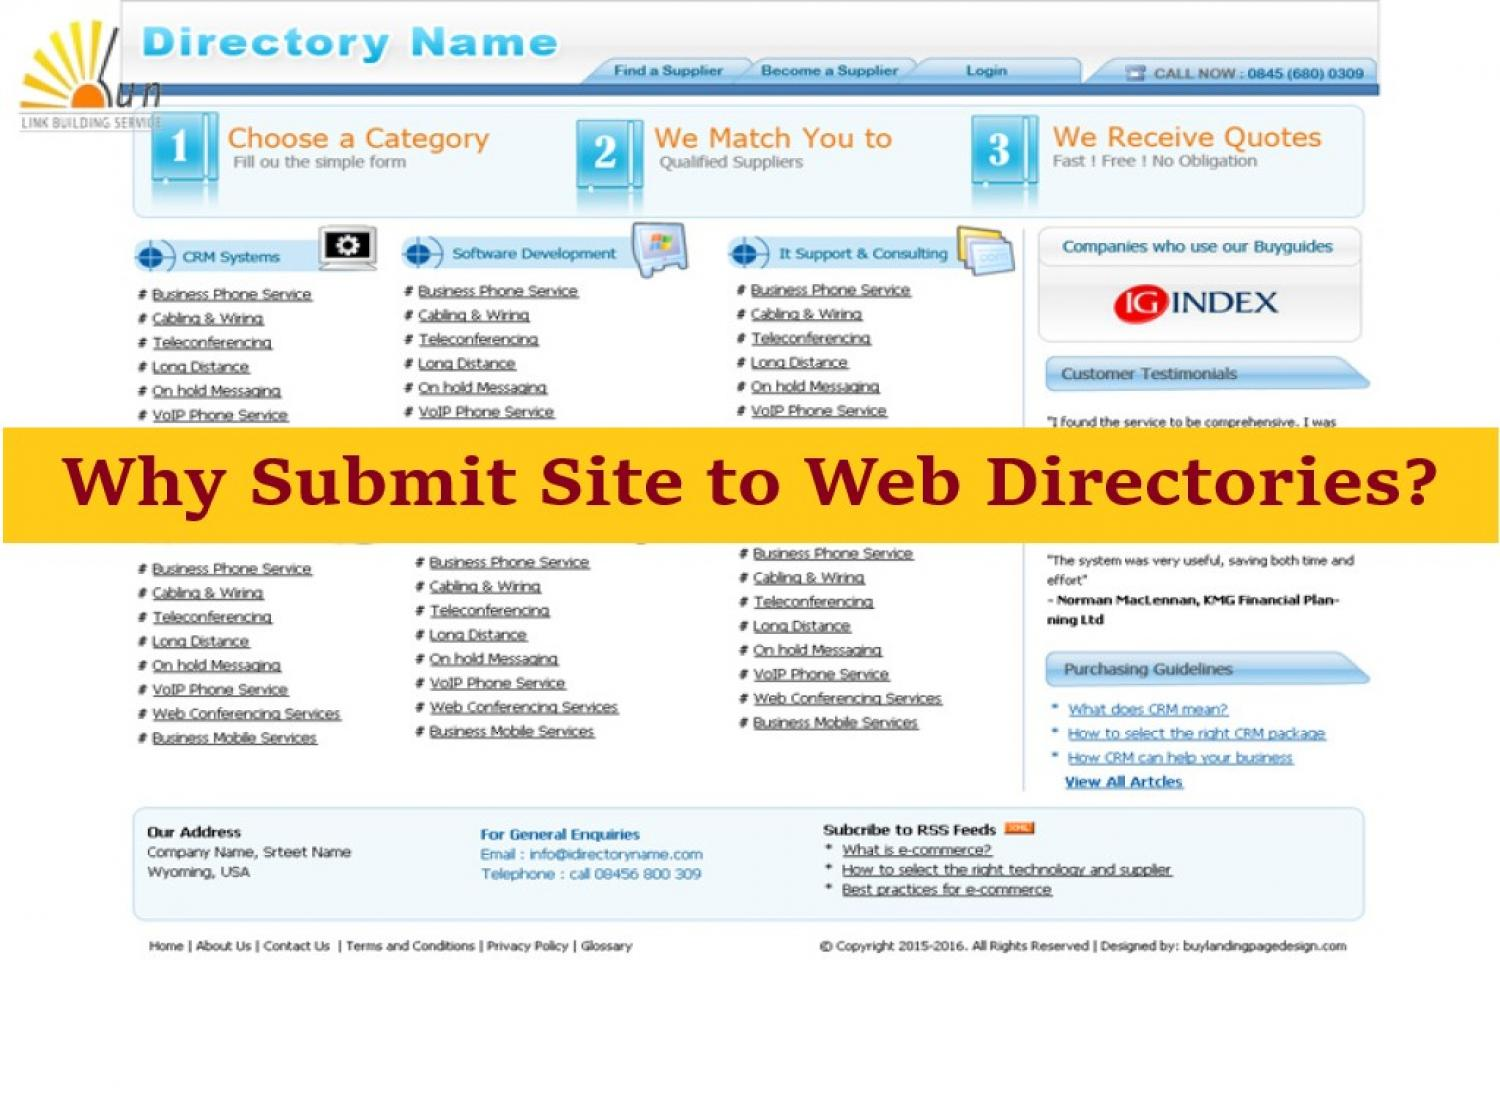 Why Submit Website Details To Web Directories?